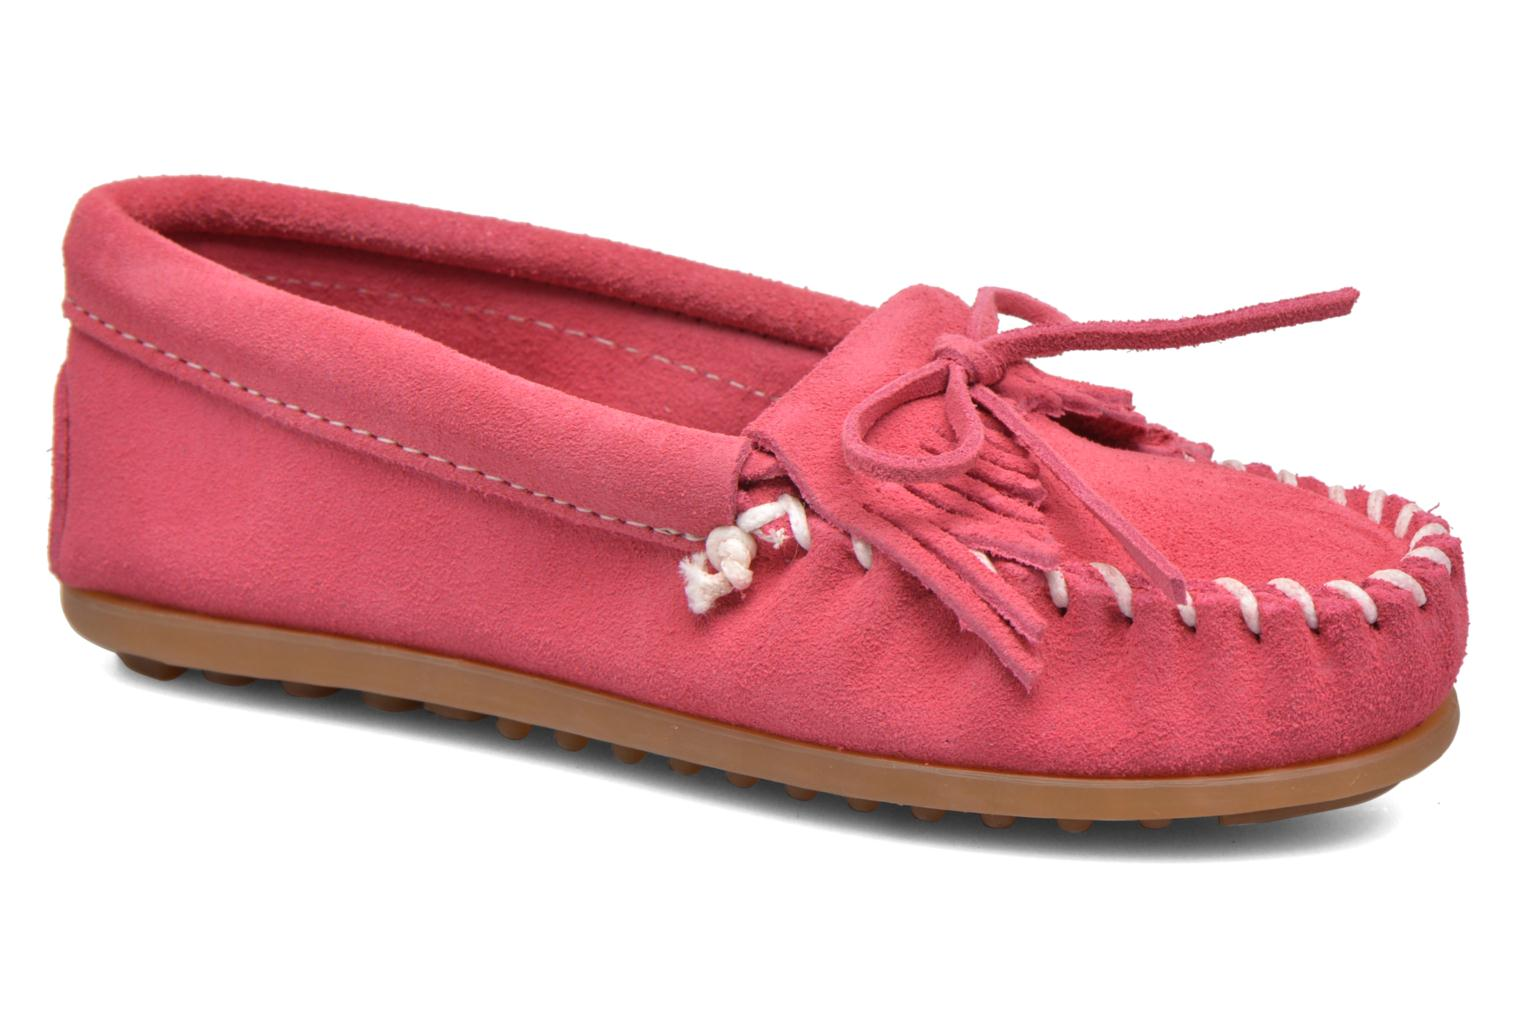 Kilty Moccasin E Hot Pink Suede